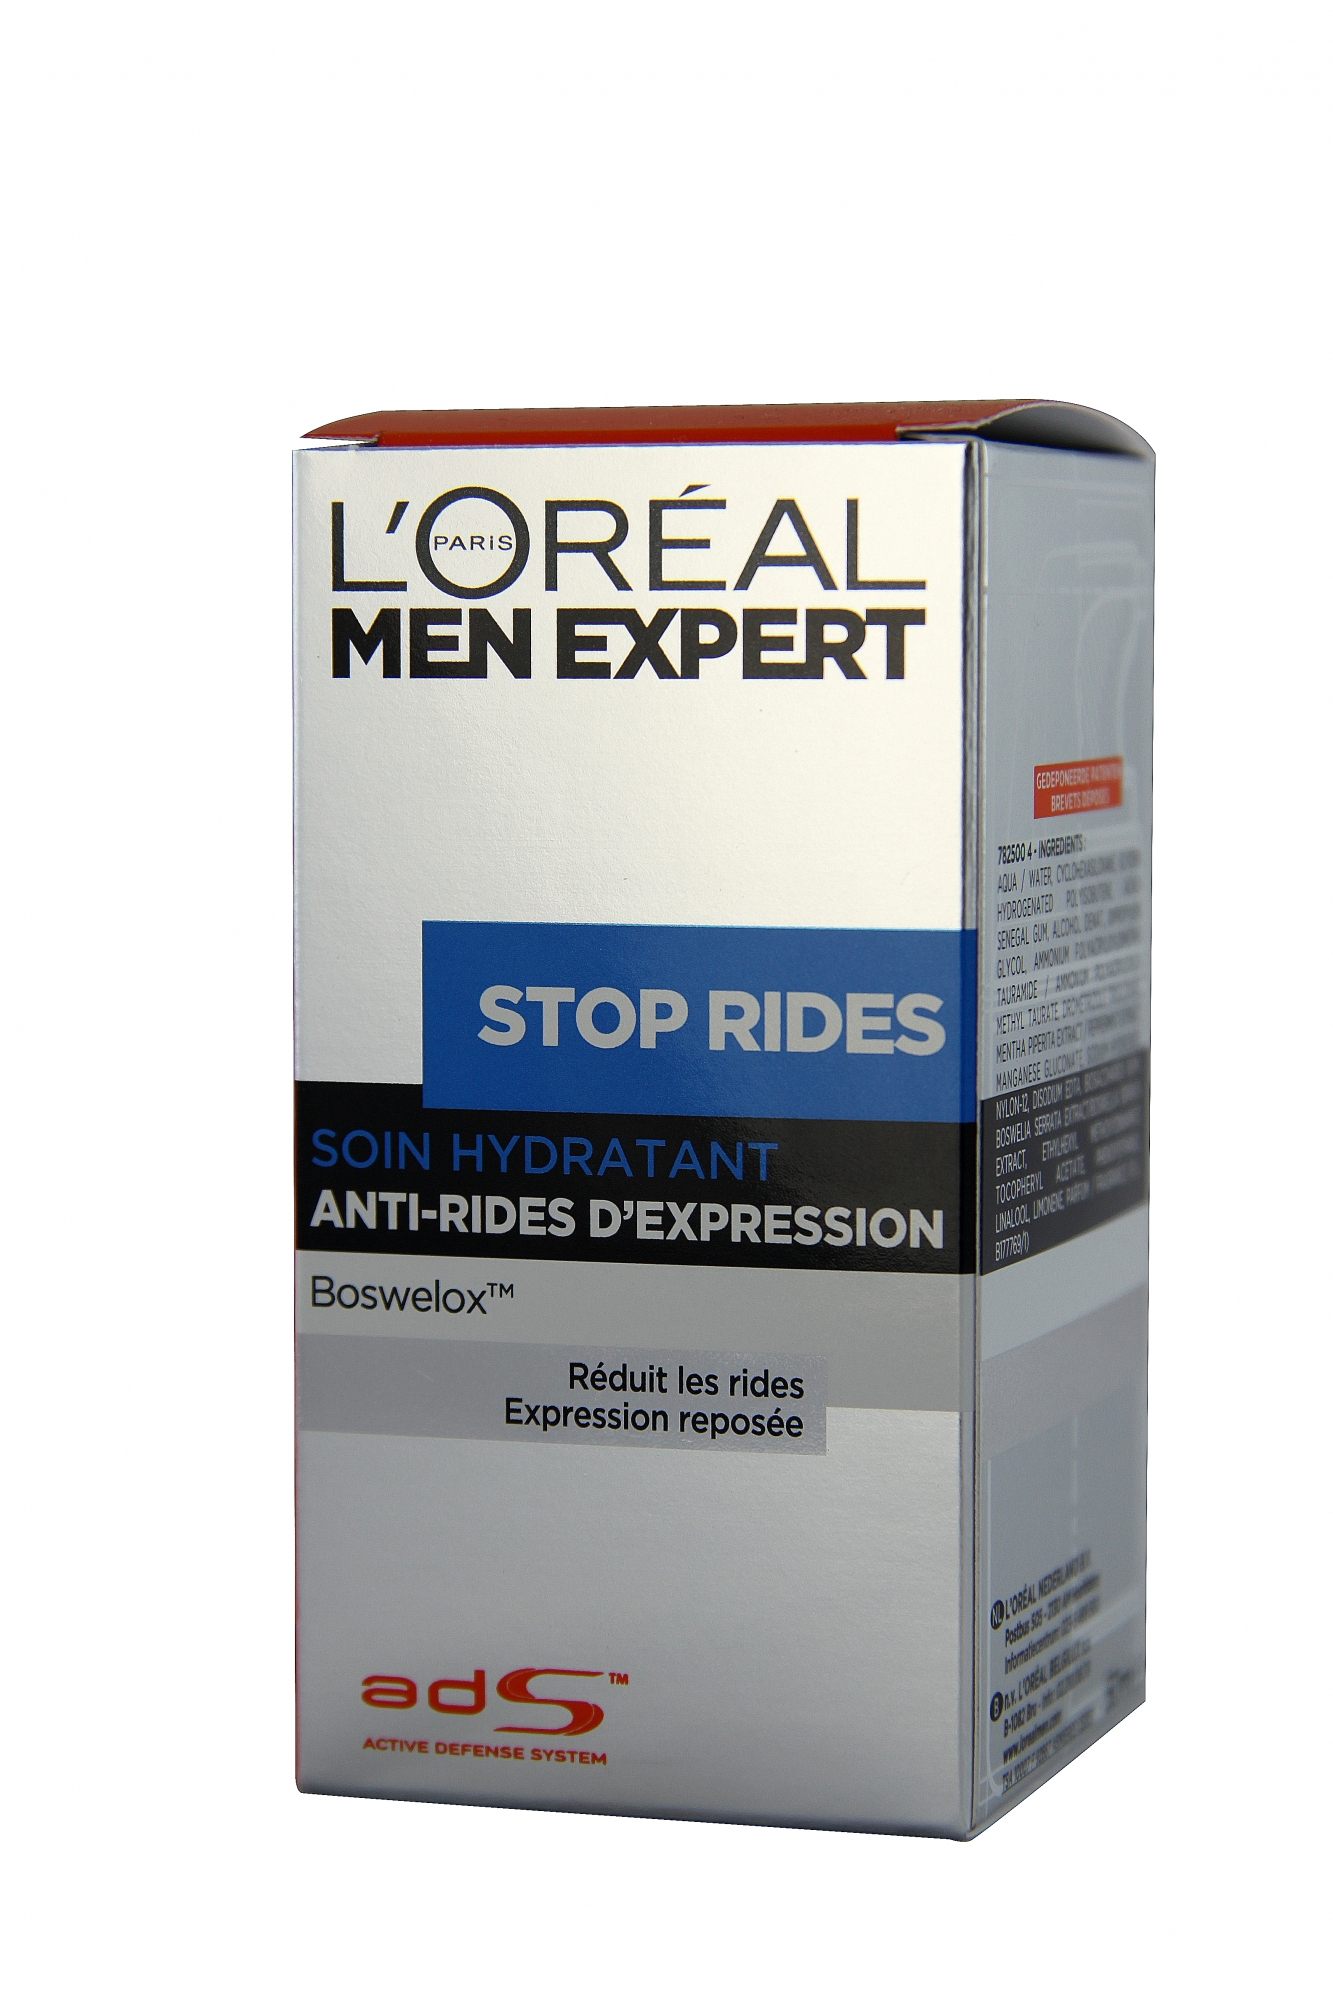 L'Oréal Men Expert - Stop Rides Soin Hydratant Anti-Rides D'expression Boswelox